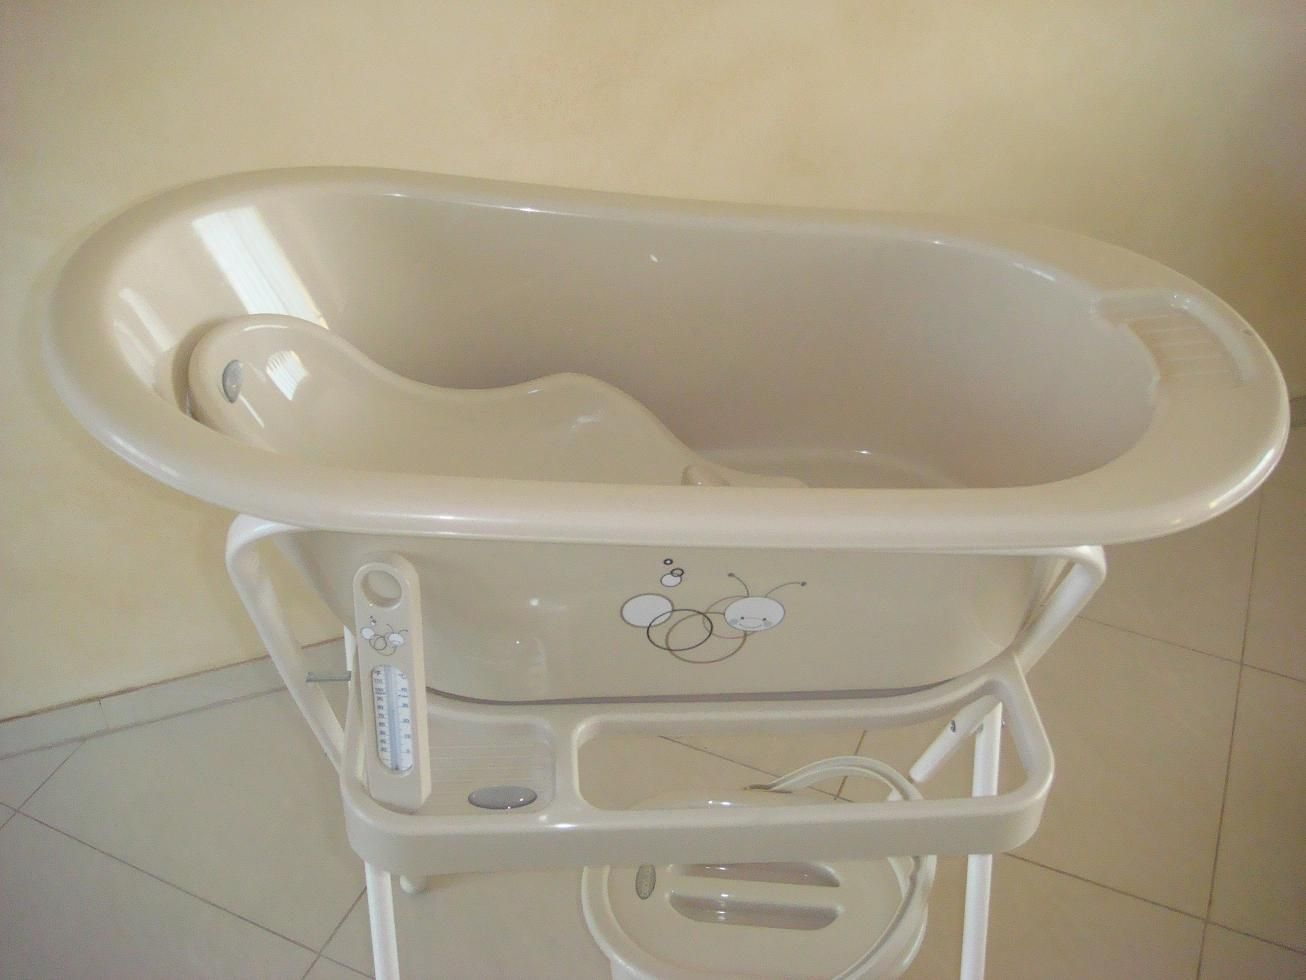 baby bath tub with stand by Bebe Jou | BABY\'s WORLD | Pinterest ...